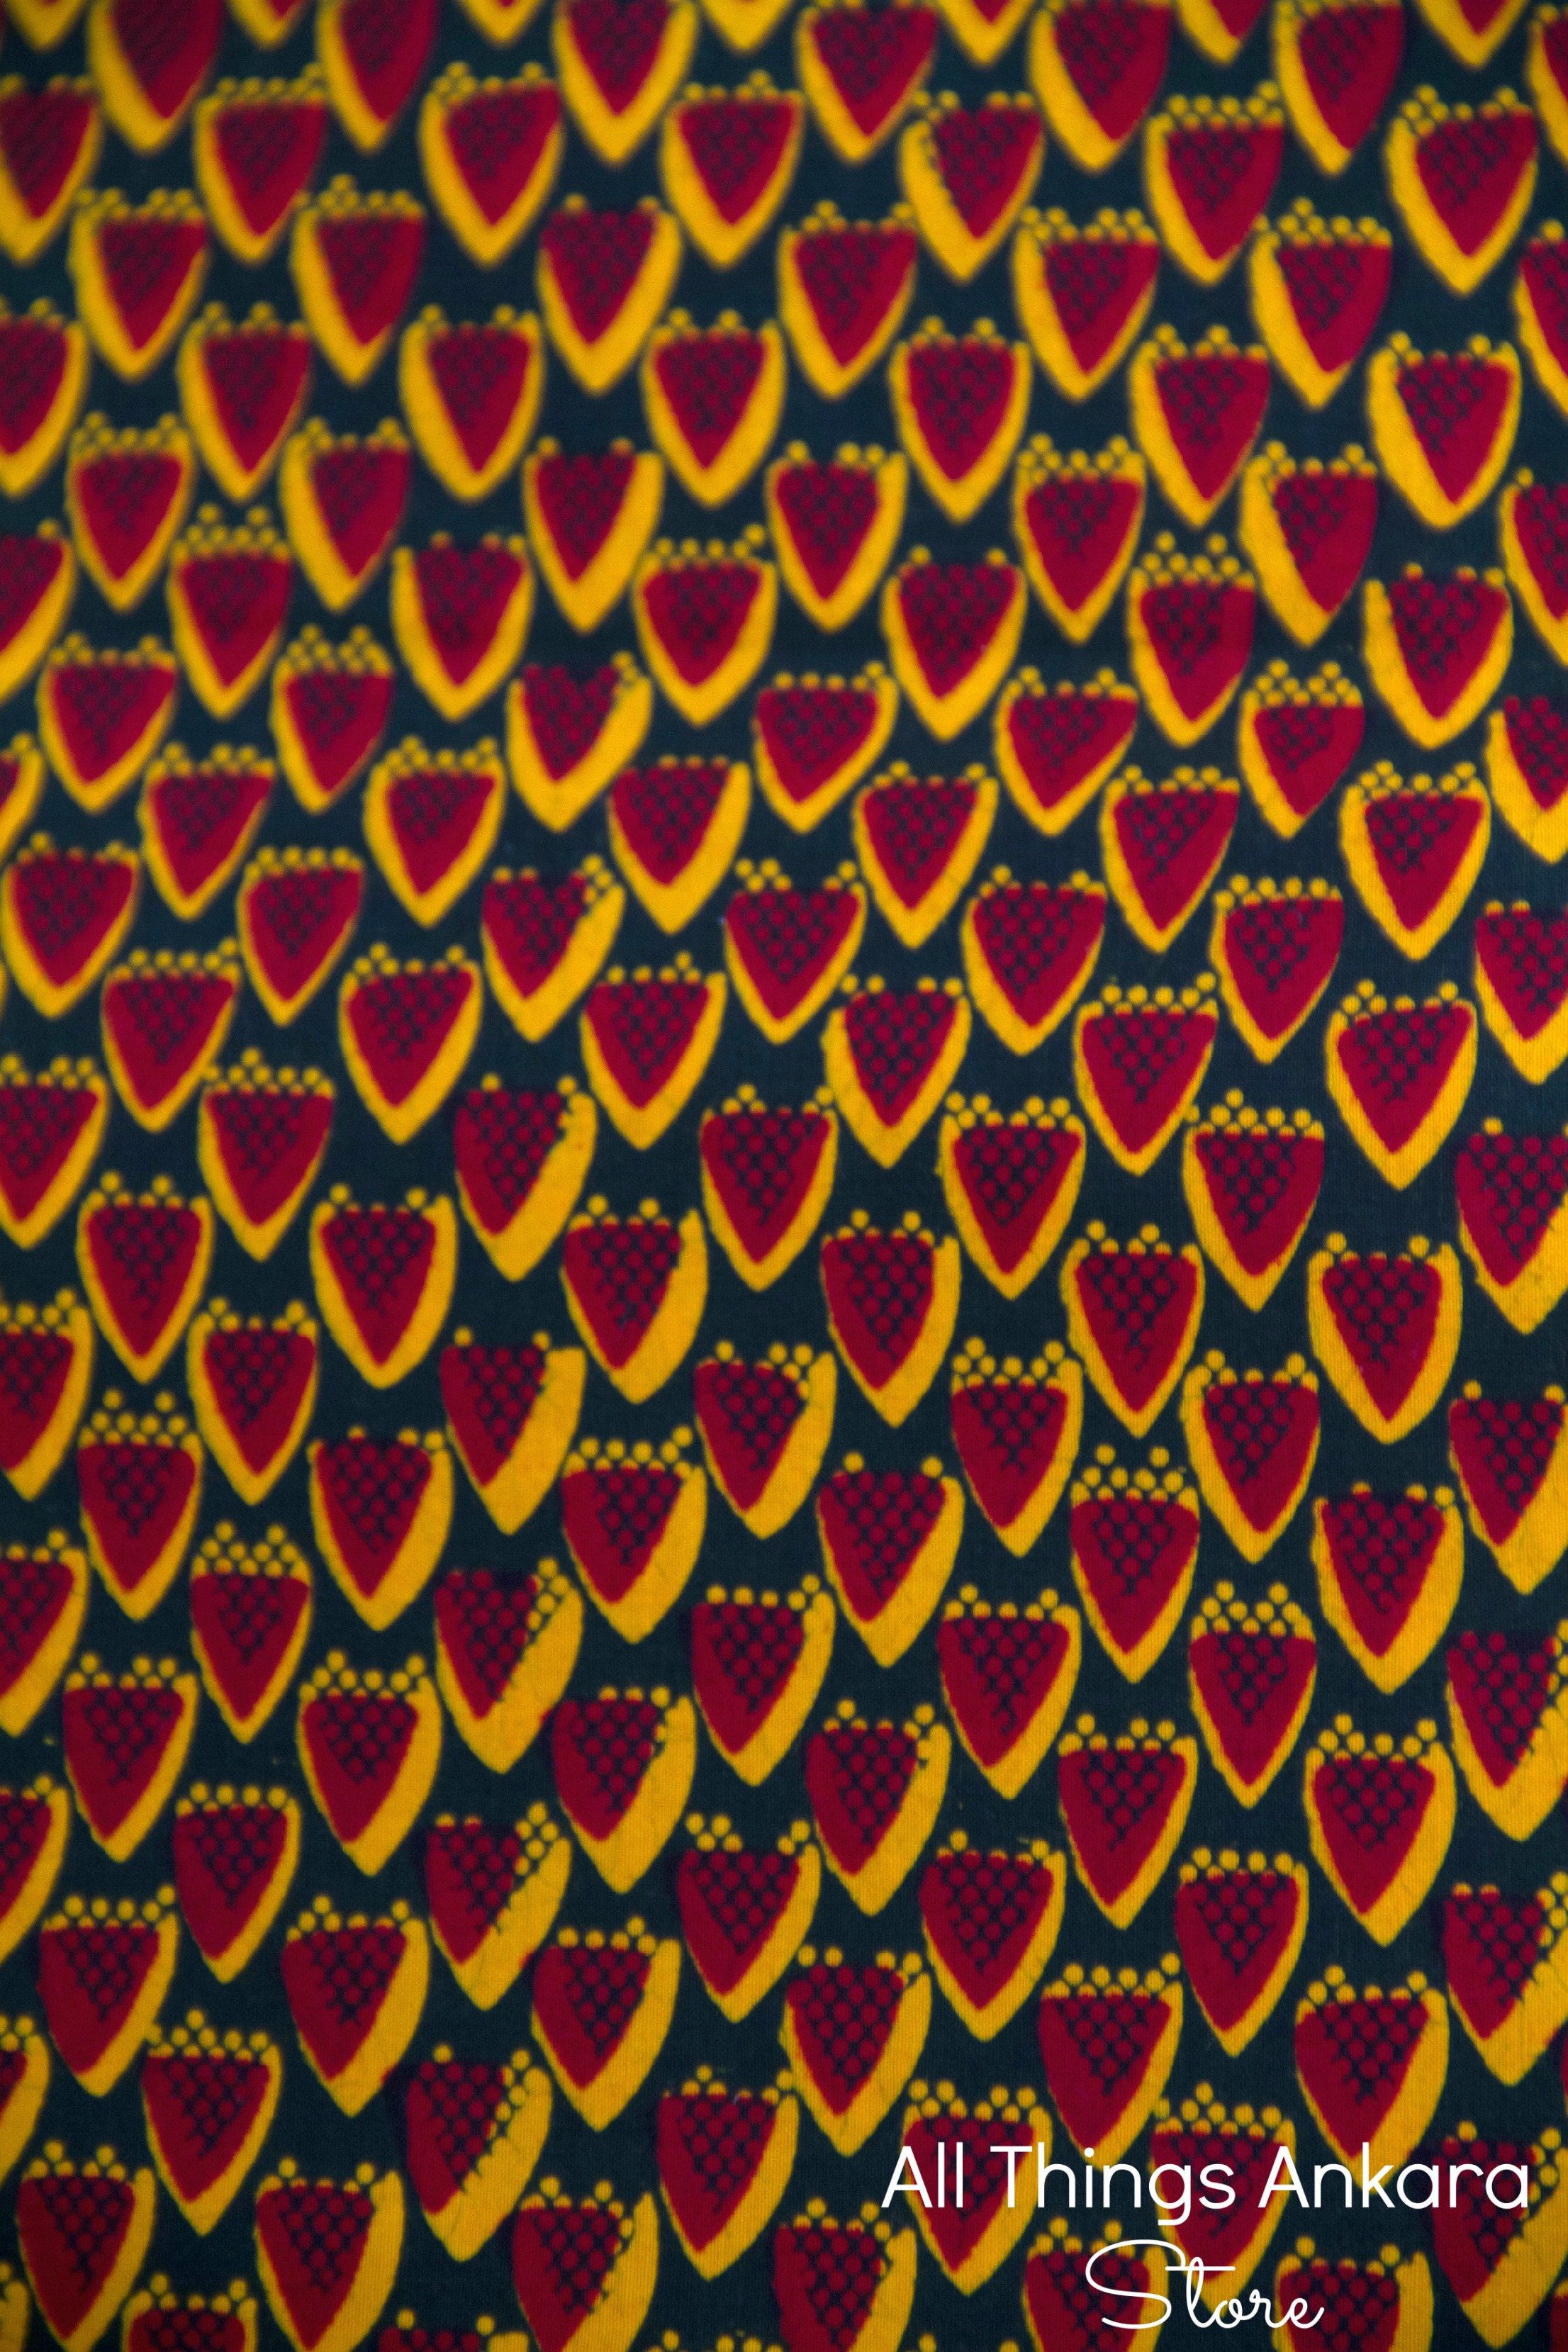 red-yellow-black-wedge-half-wax-prints